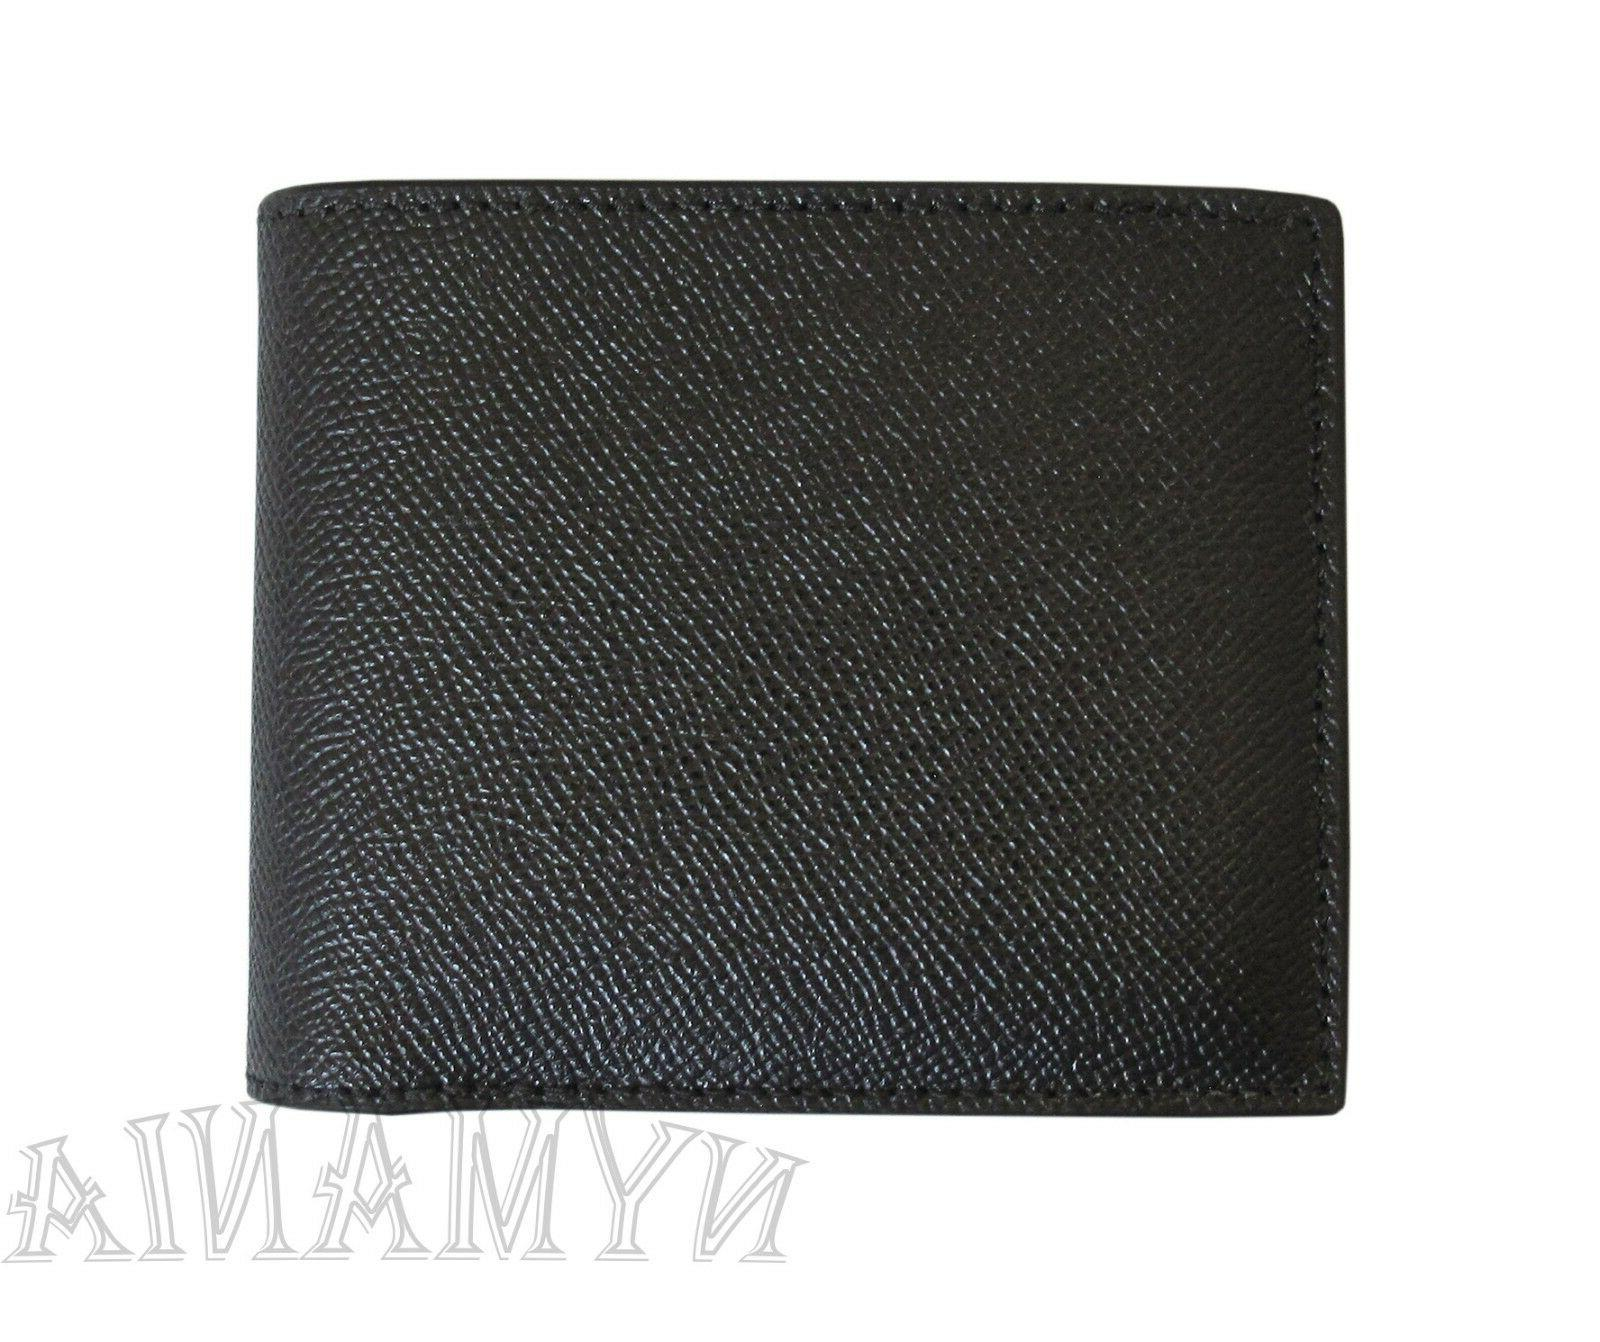 New COACH F59112 Mens 3-IN-1 Compact Leather GIFT BOX